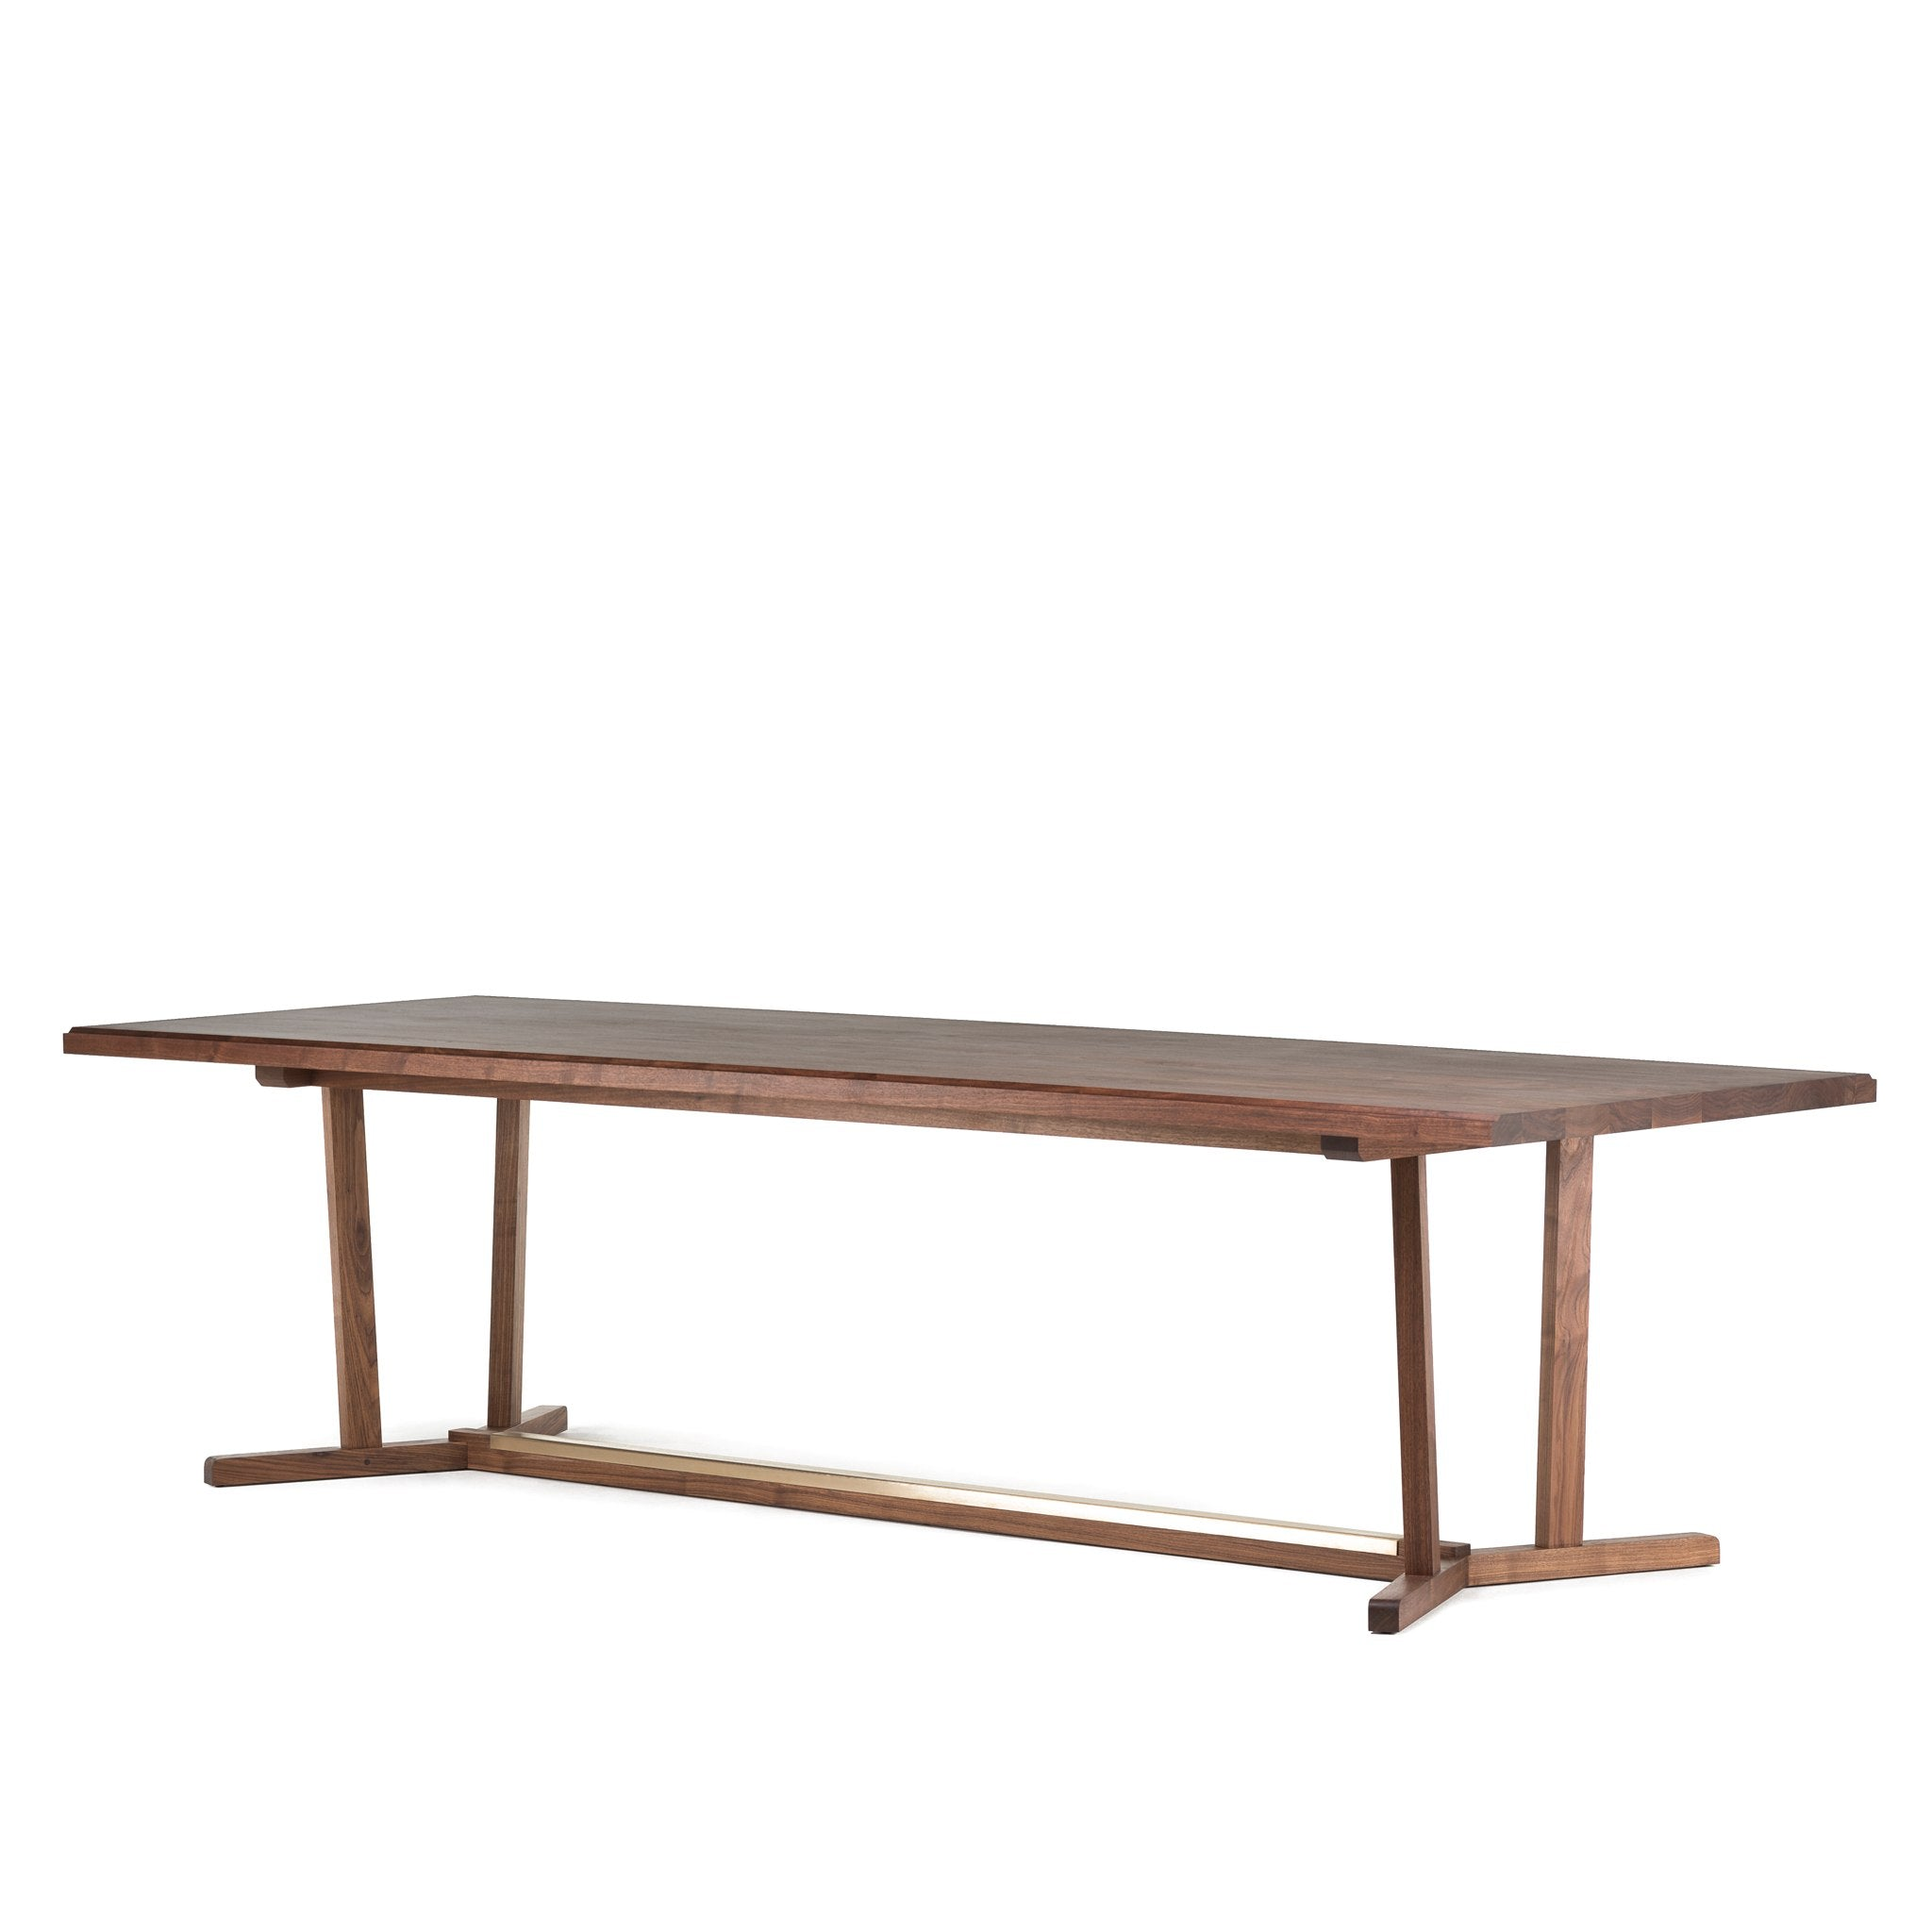 Shaker Dining Table Timber Top by Neri & Hu - haus®